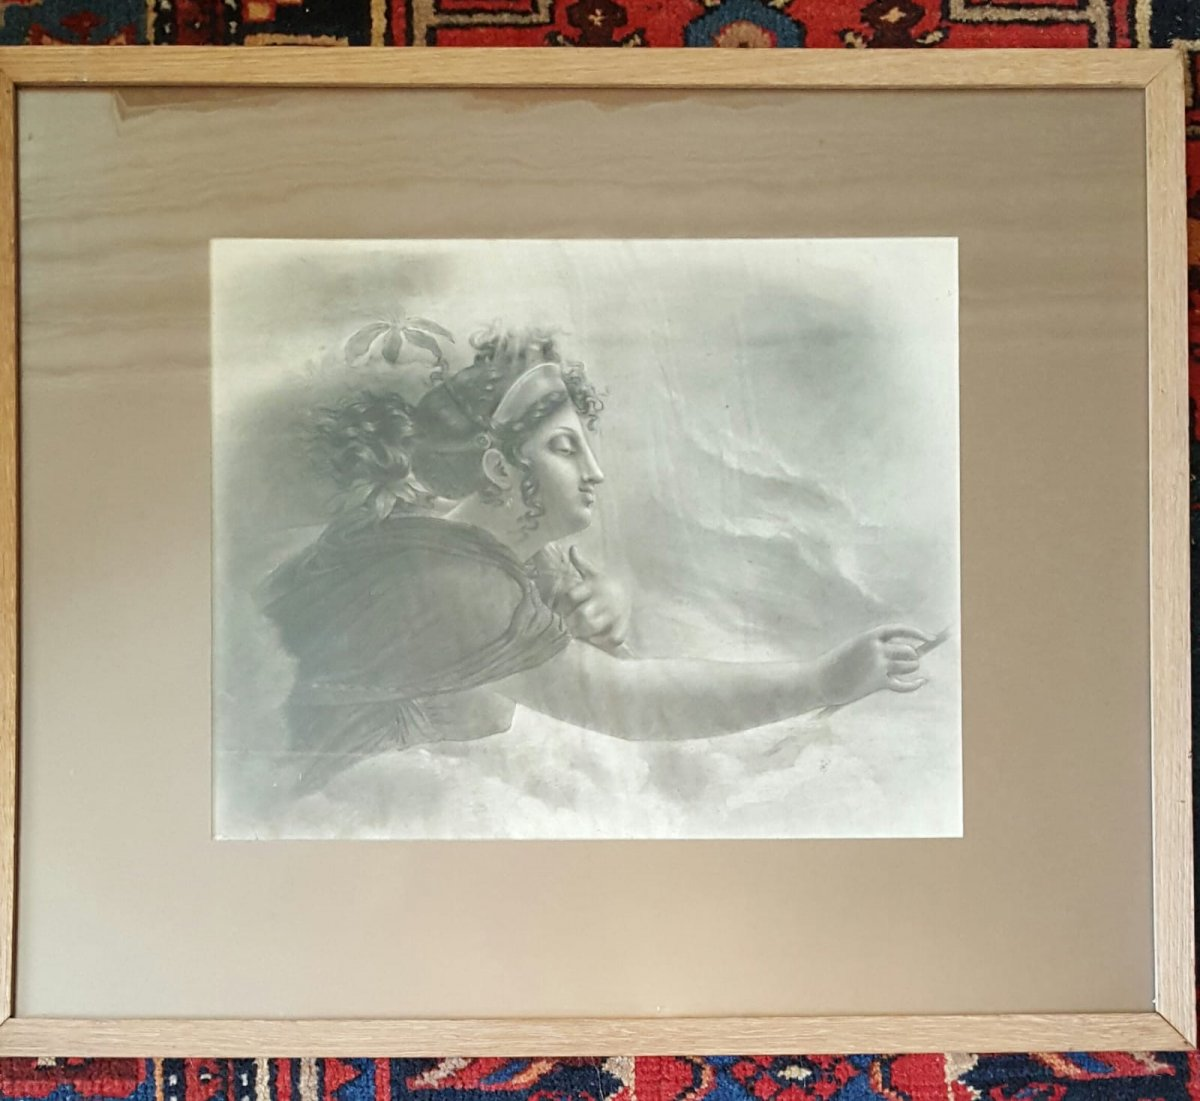 Drawing Mythological Subject By Couperin De La Couperie